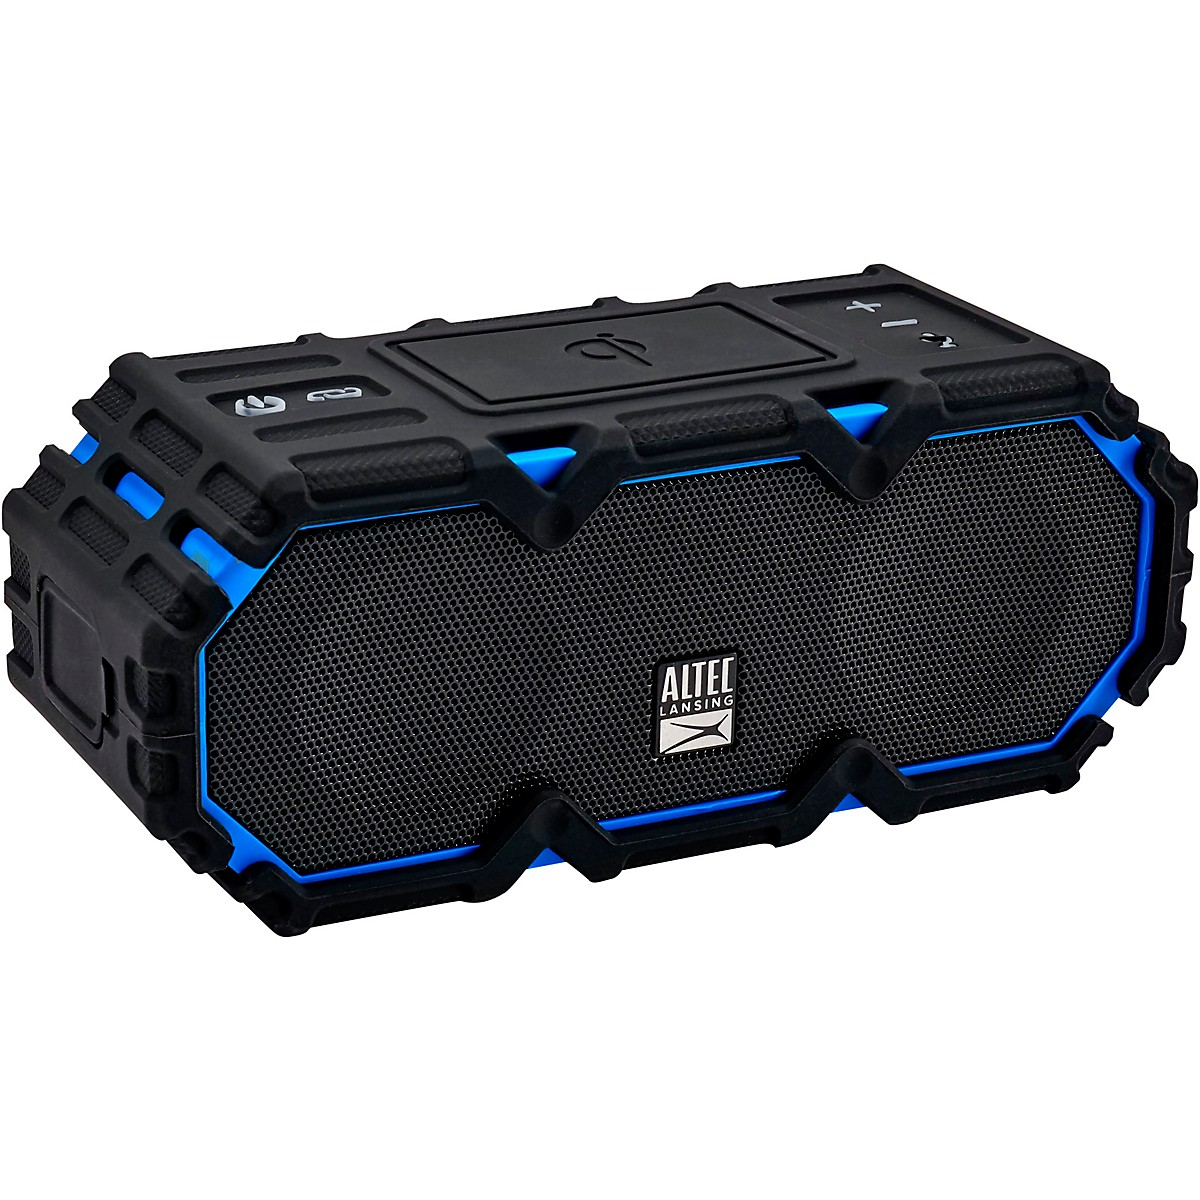 Altec Lansing Altec Lansing LifeJacket Jolt Portable Waterproof Bluetooth  Speaker